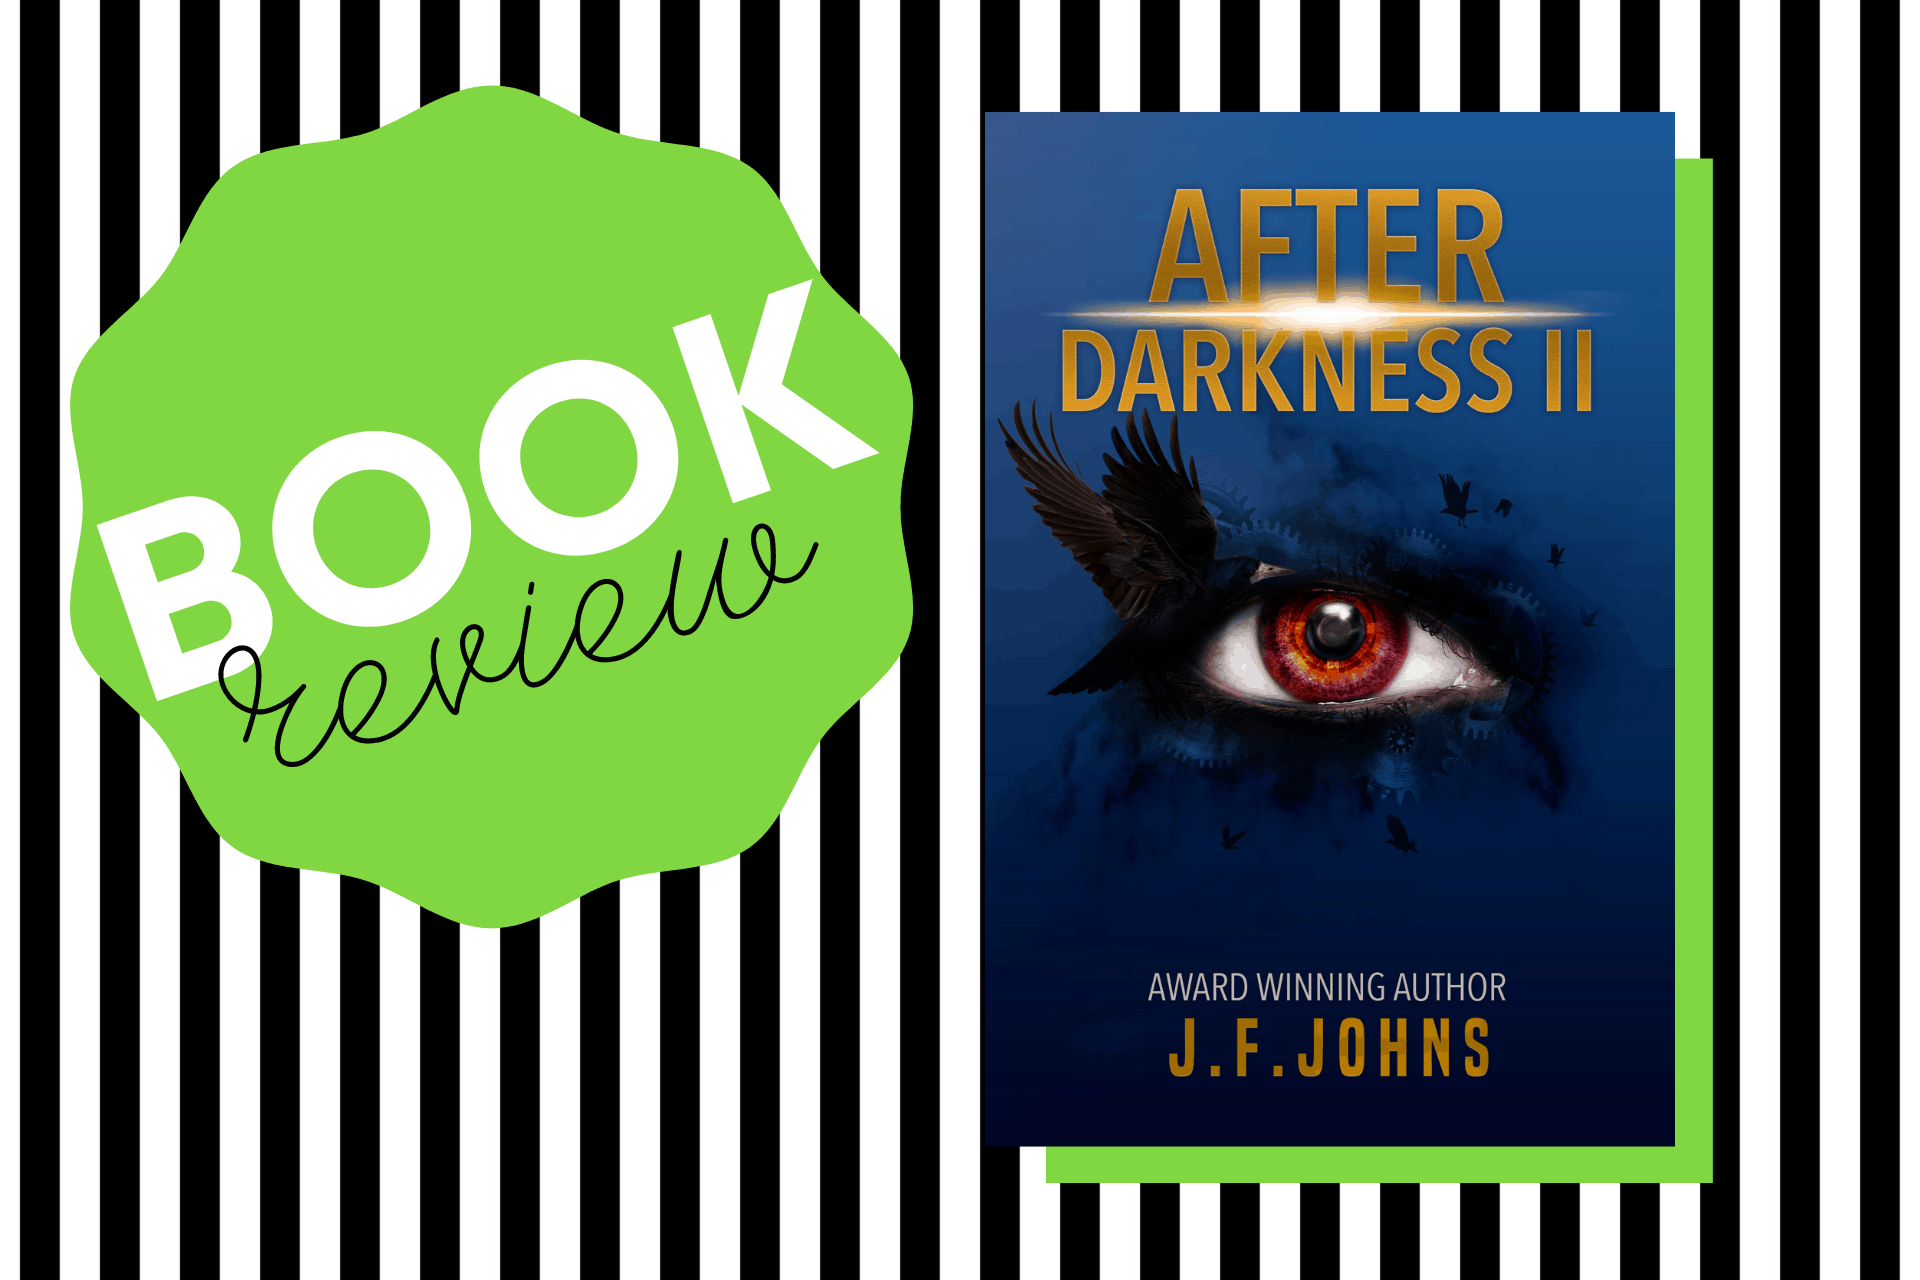 The cover of After Darkness II by J F Johns